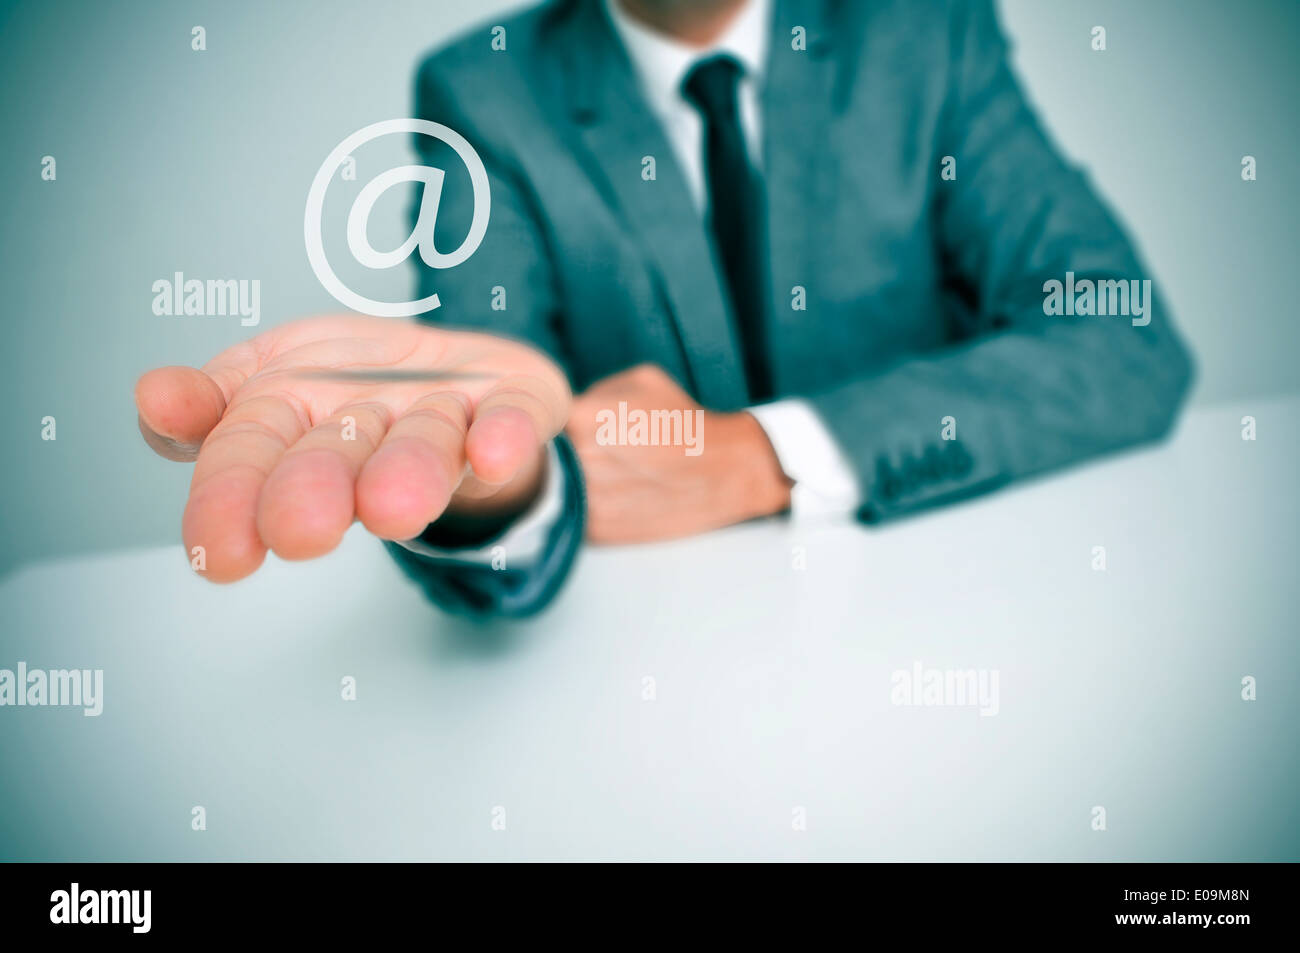 a businessman sitting in a desk with an at sign in his hand, depicting the concept of e-mail service - Stock Image